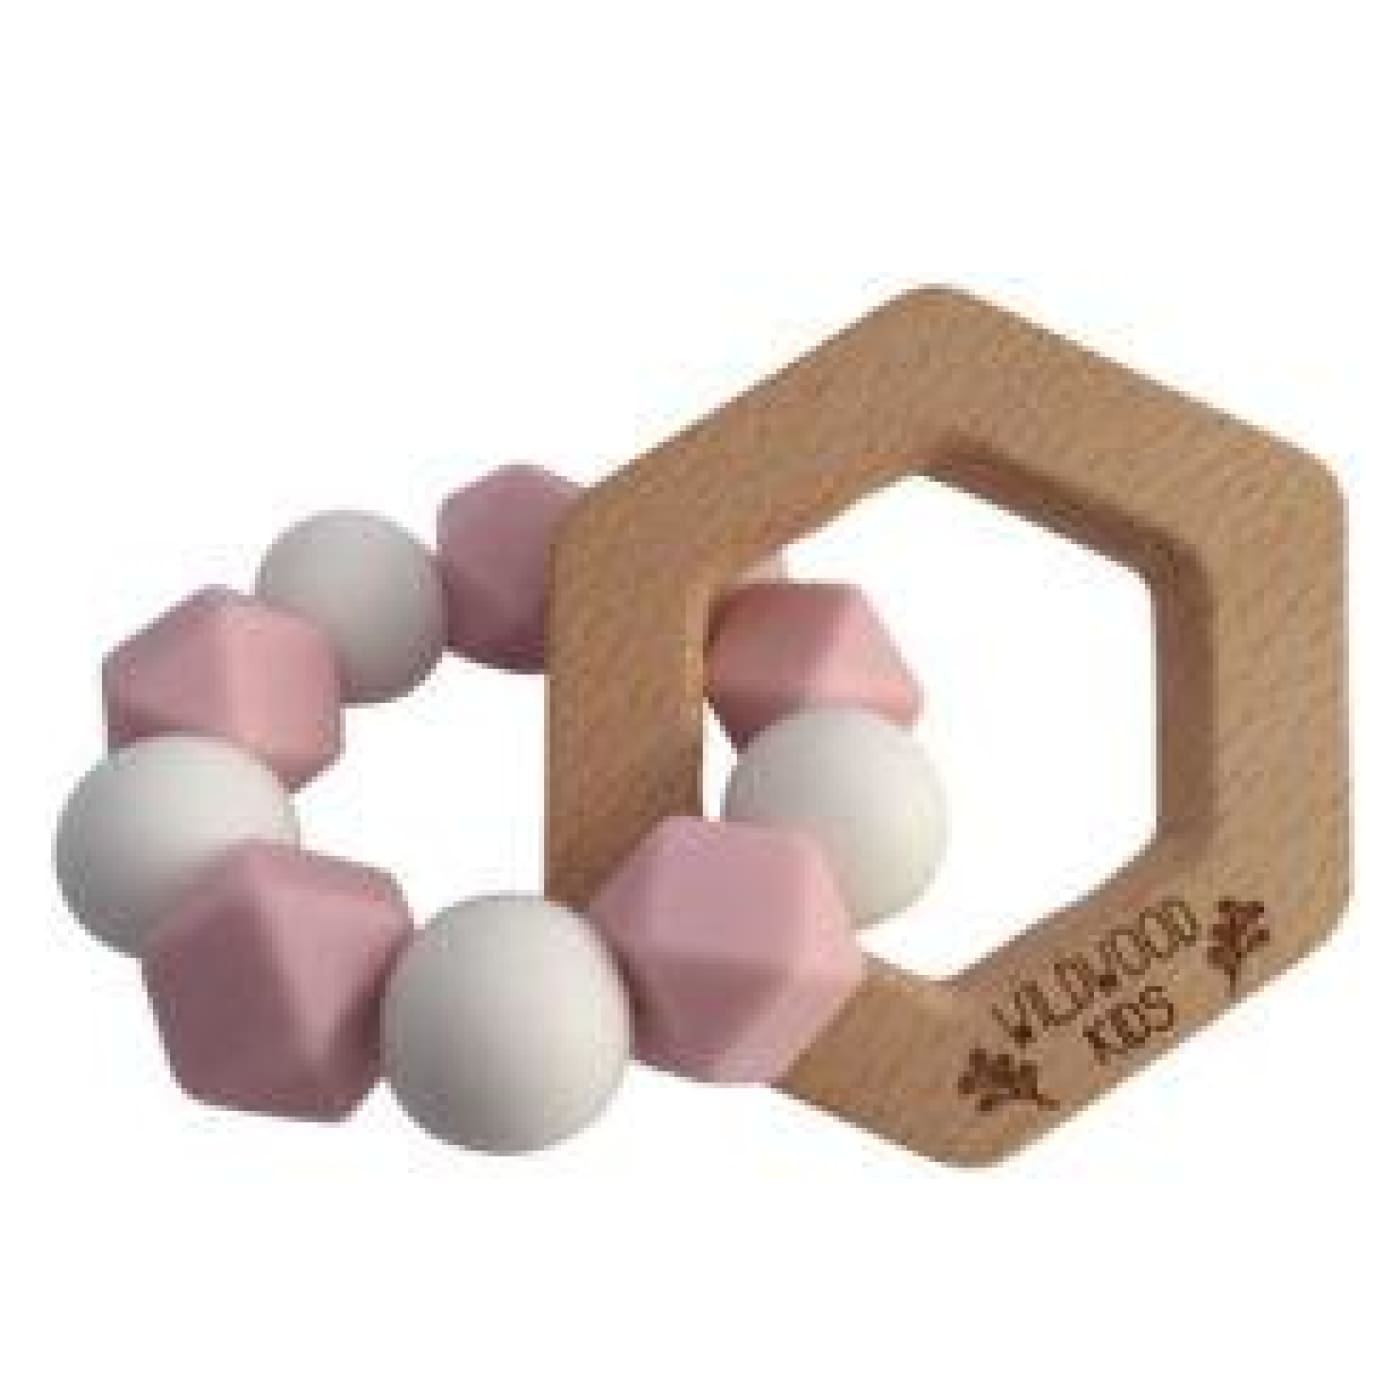 Wildwood Kids Teether - Heart Pink/White - NURSING & FEEDING - TEETHERS/TEETHING JEWELLERY